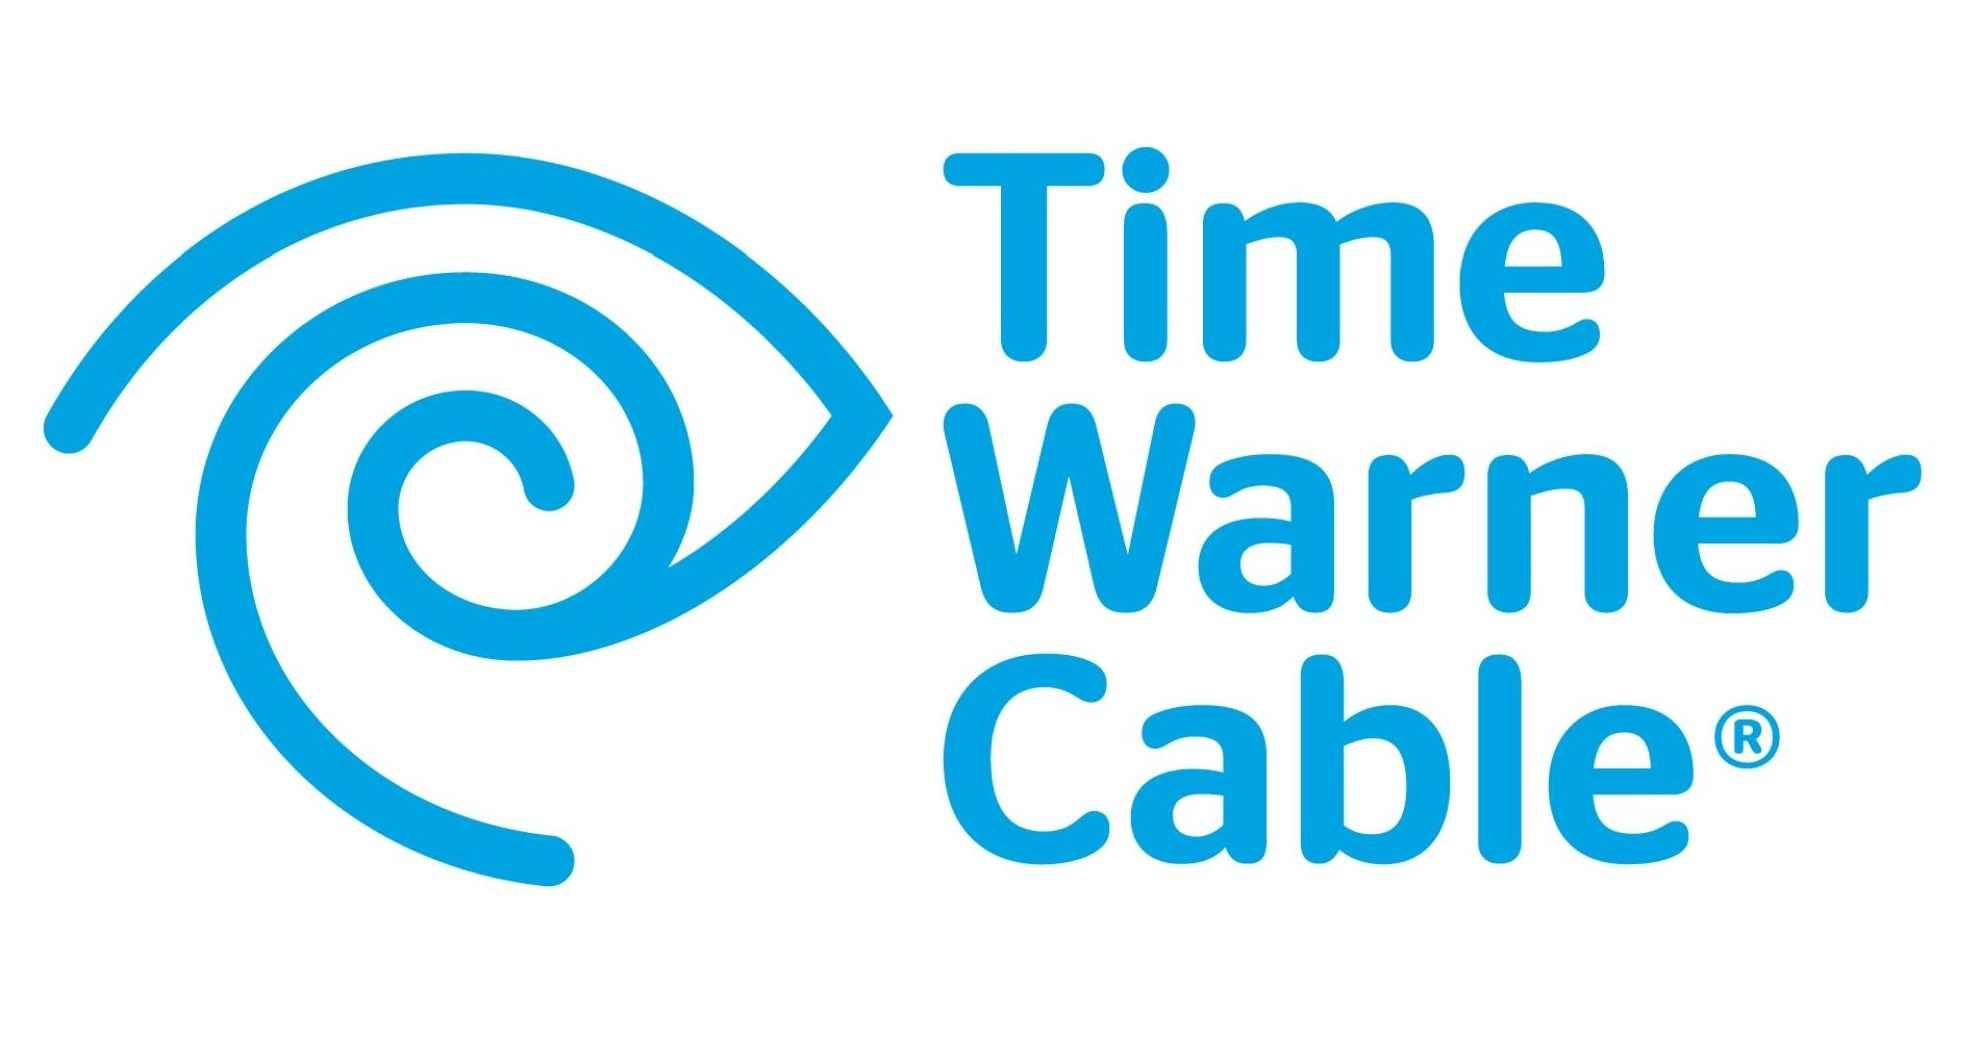 http://www.freelogovectors.net/wp-content/uploads/2012/04/time-warner-cable-logo.jpg